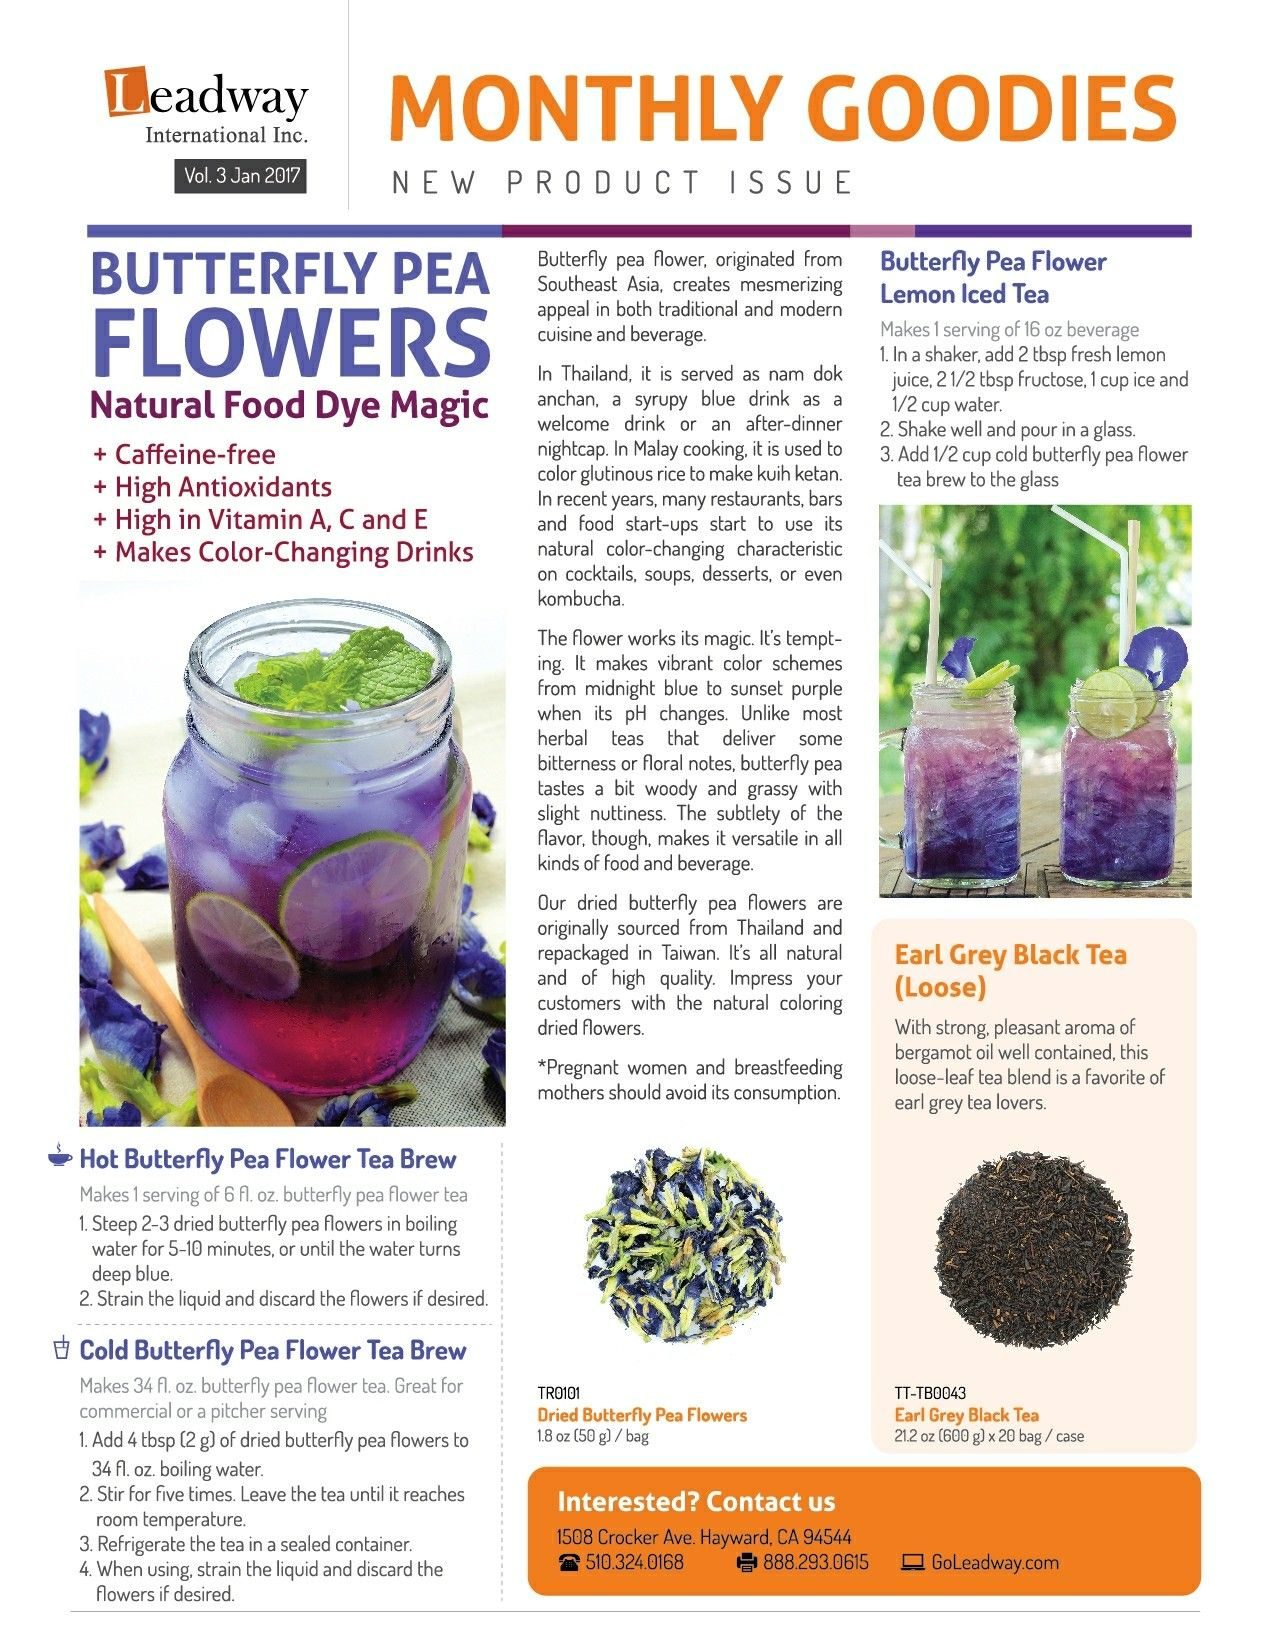 Pin by Amalia Funari on Tea Time Butterfly pea flower